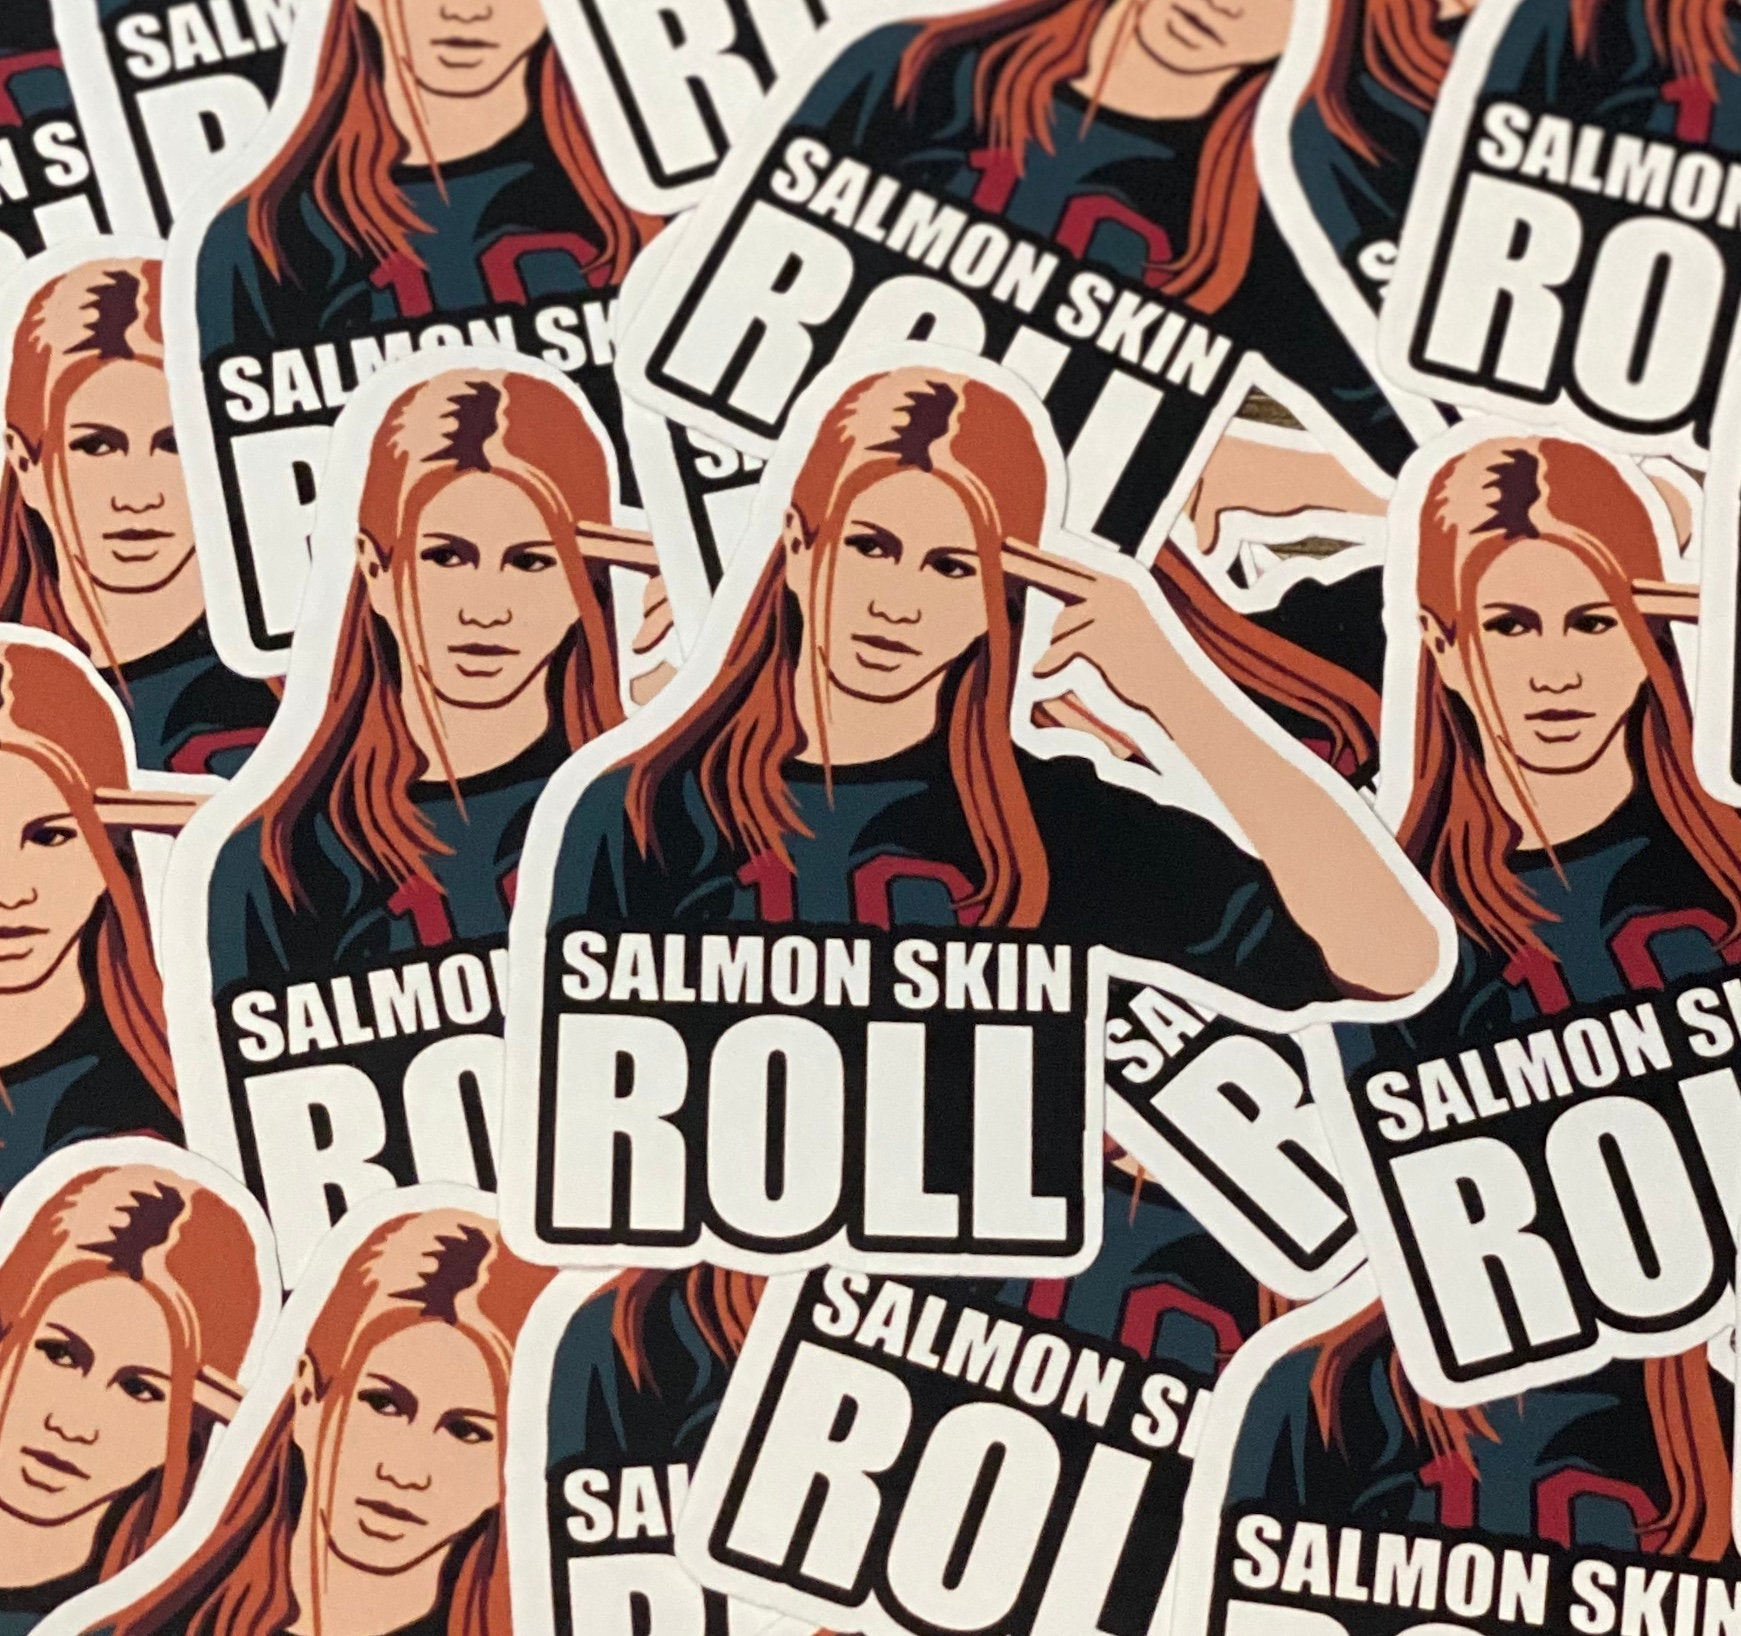 Friends Salmon Skin Roll Die Cut Sticker